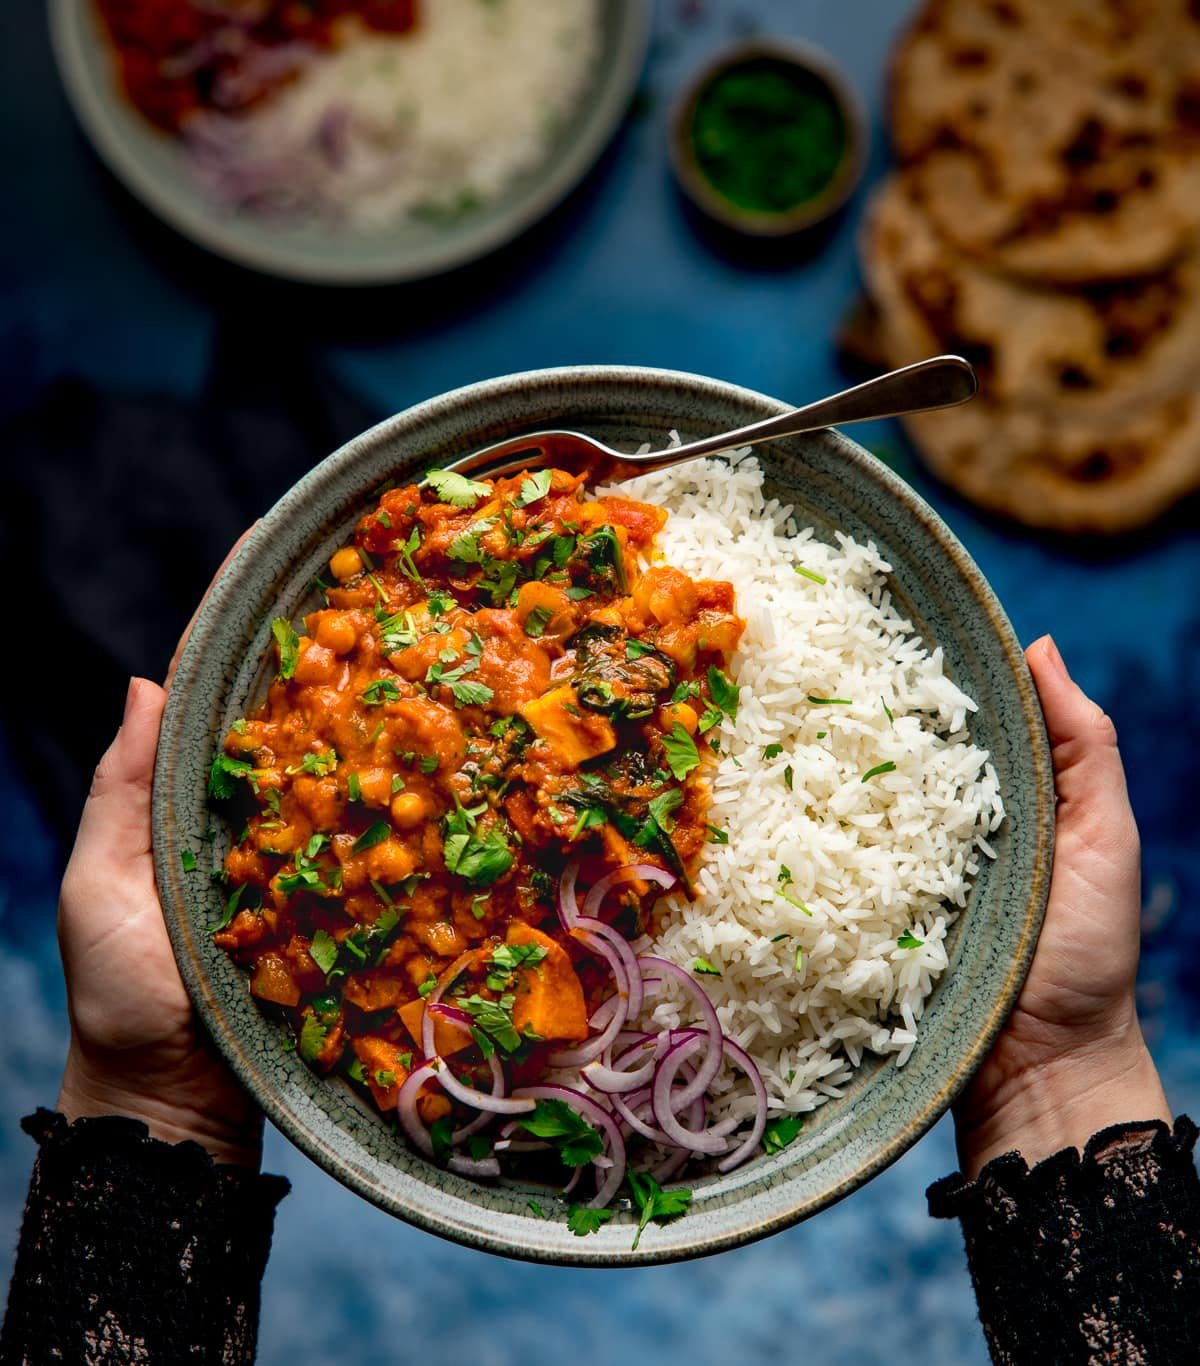 Bowl of chickpea and sweet potato curry with rice being held by two hands